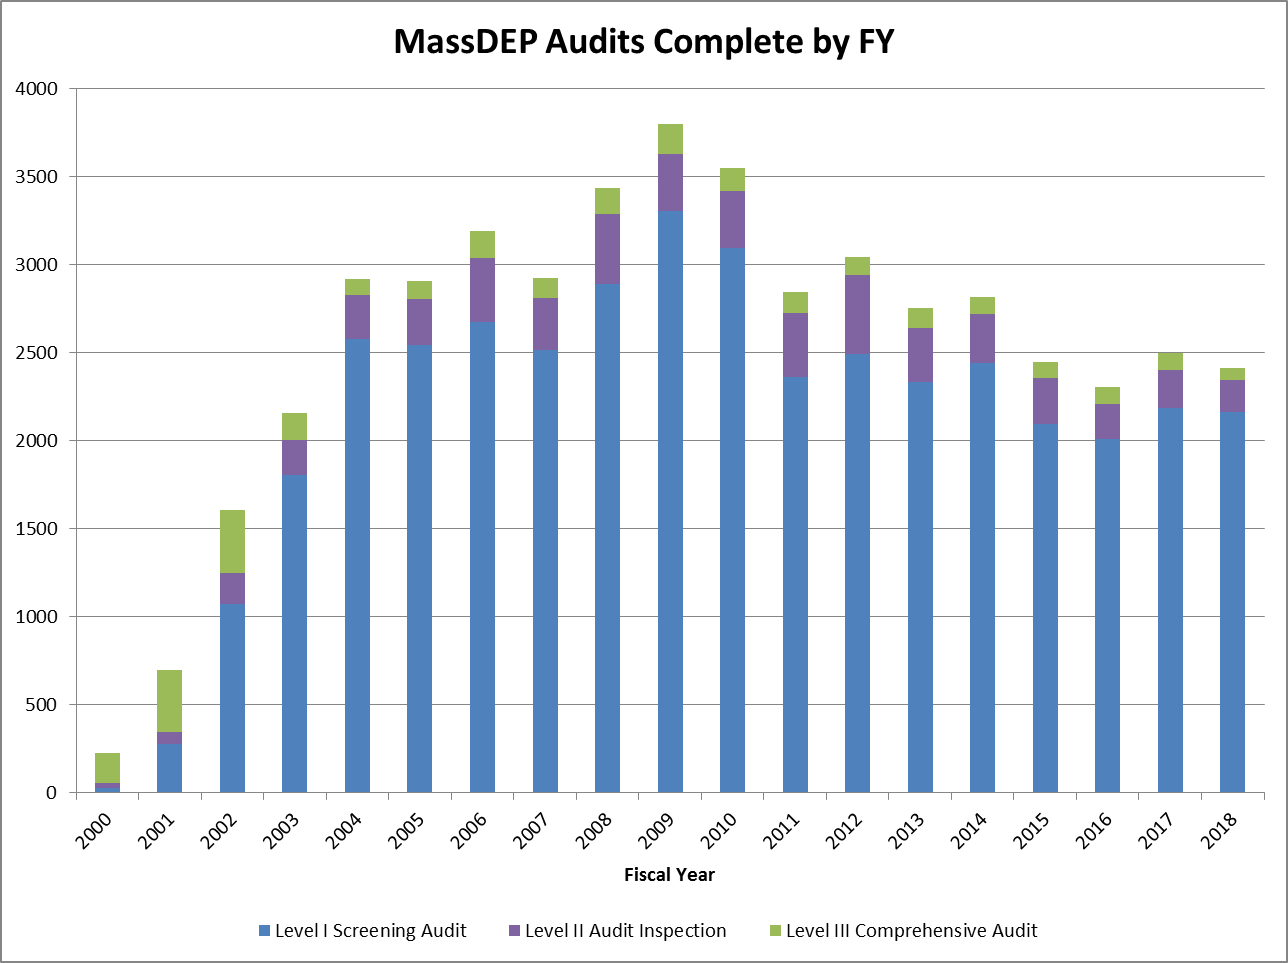 MassDEP Audits Complete by Fiscal Year